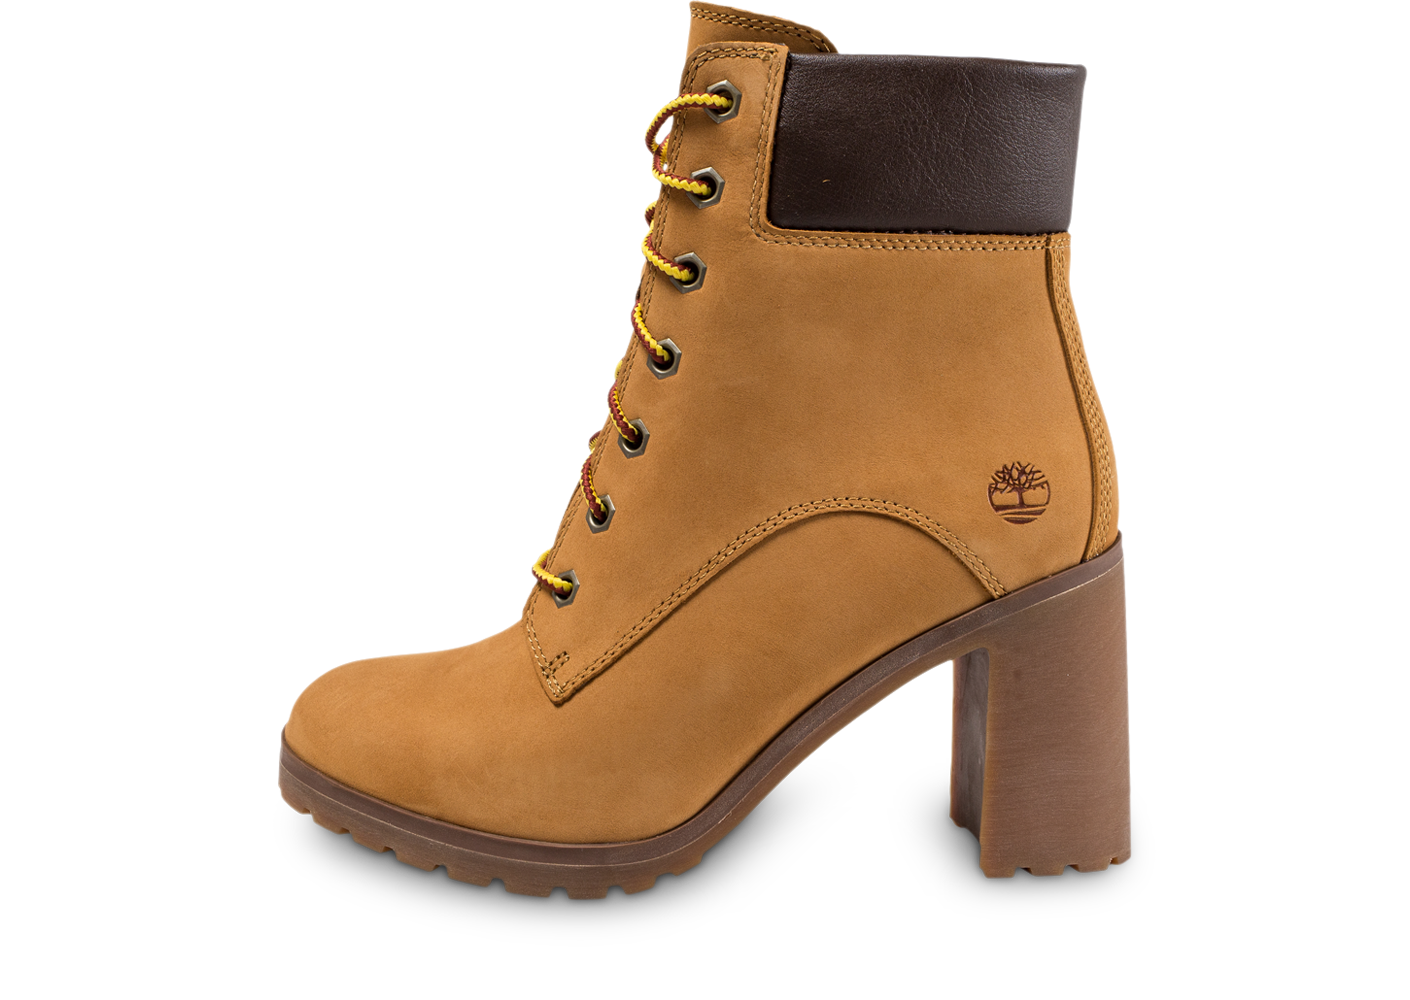 Timberland Femme Allington 6in W Beige Boots